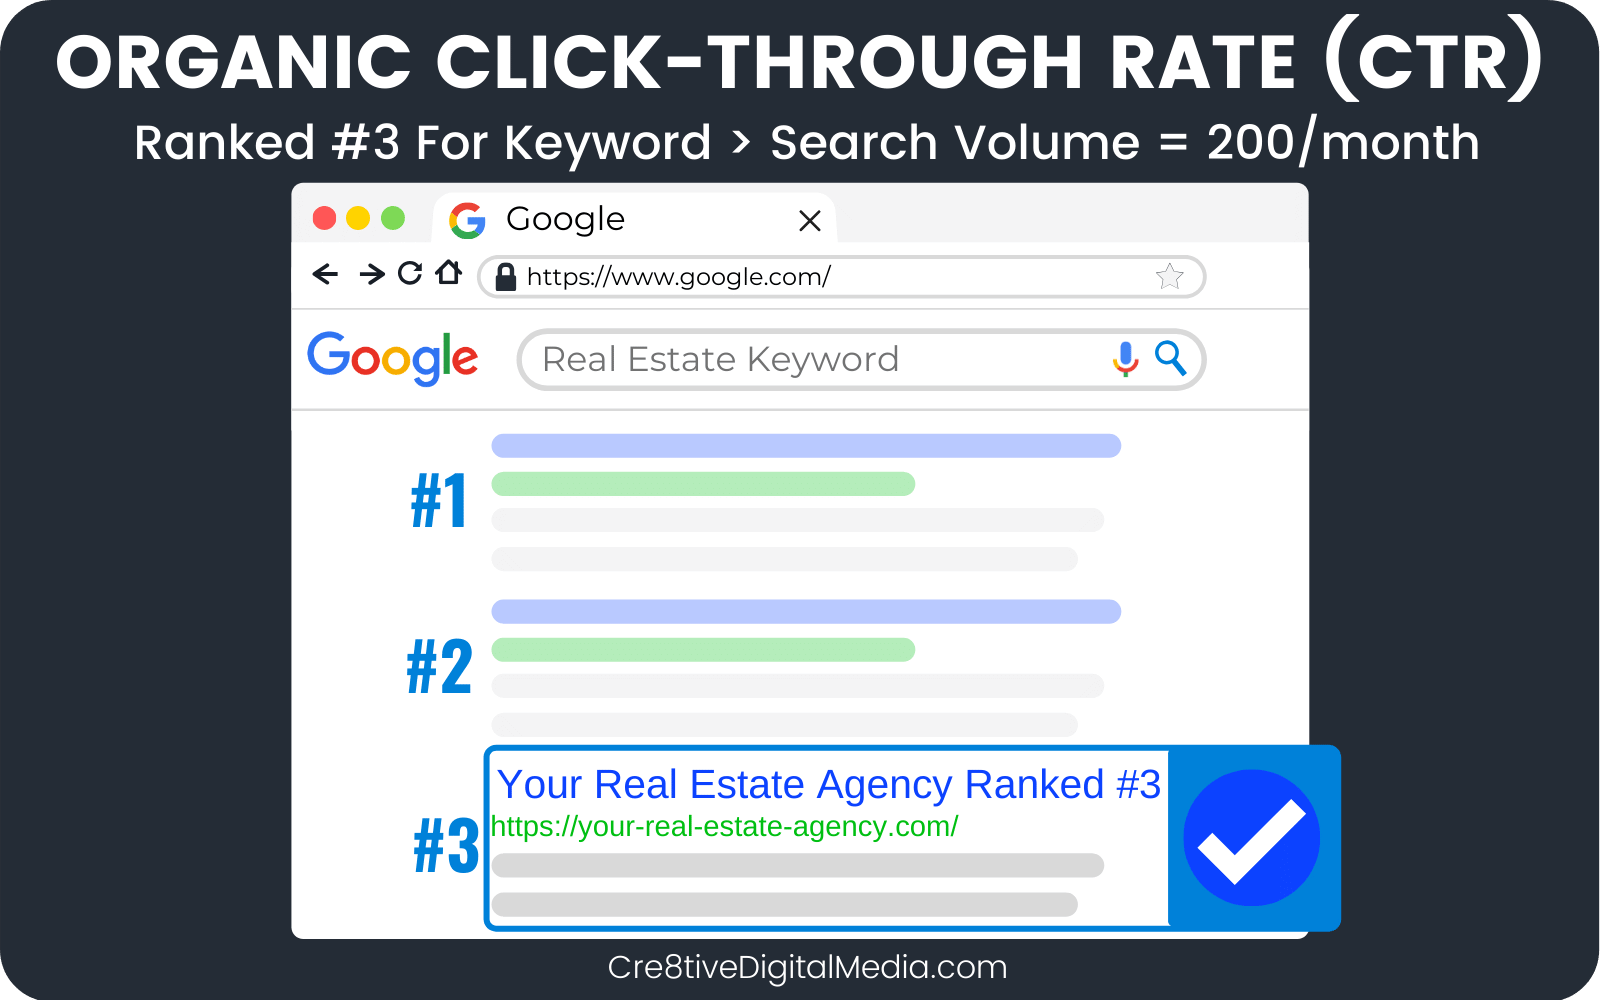 Rank 3 for a keyword searched by 200 people per month